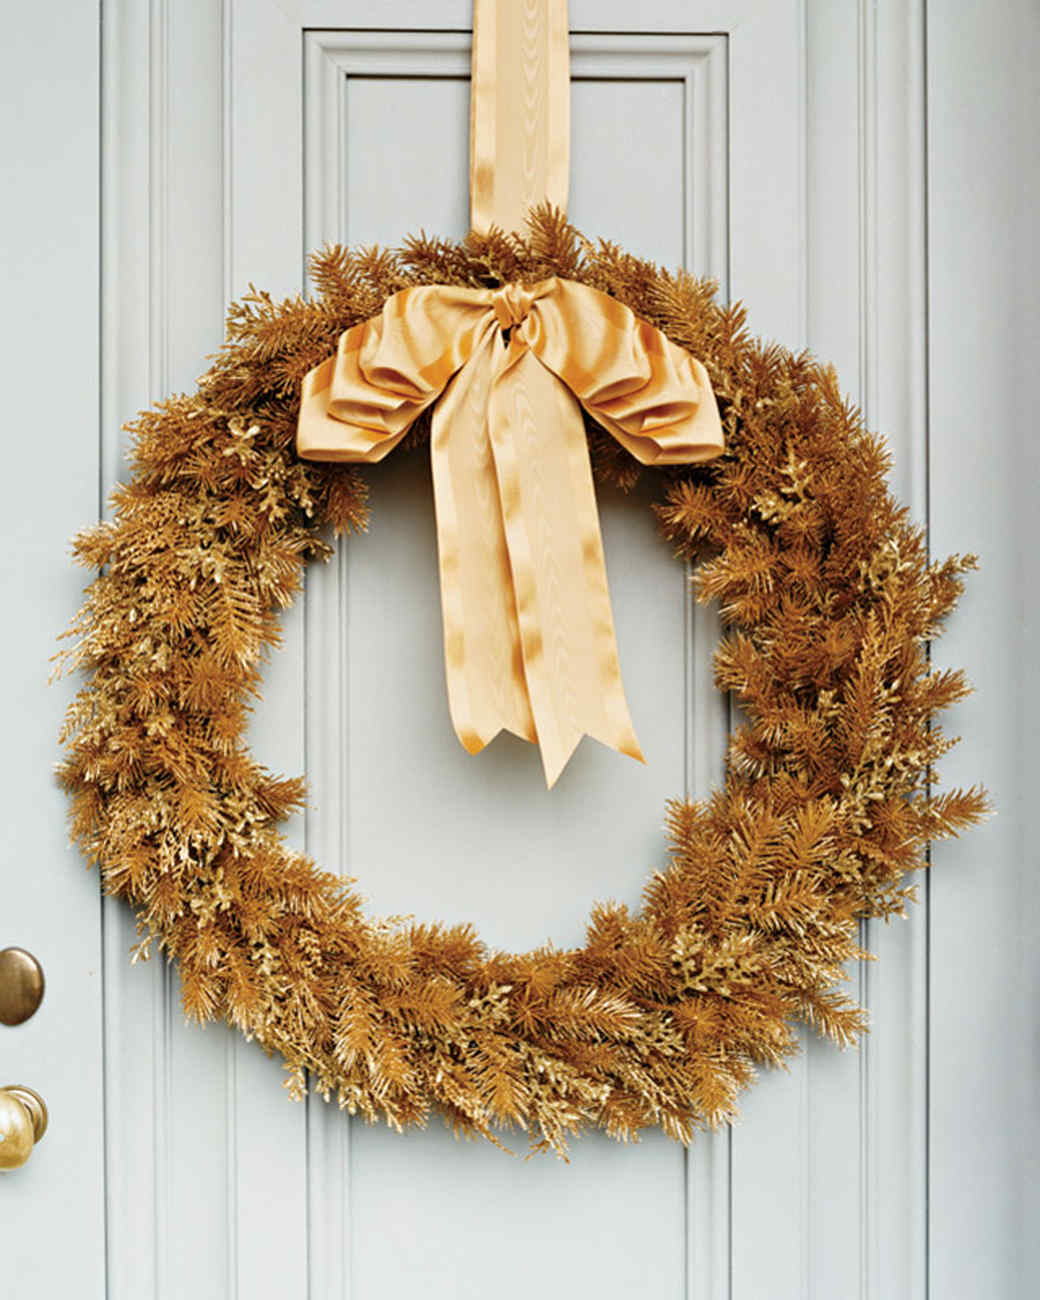 mla103805_1208_goldwreath.jpg